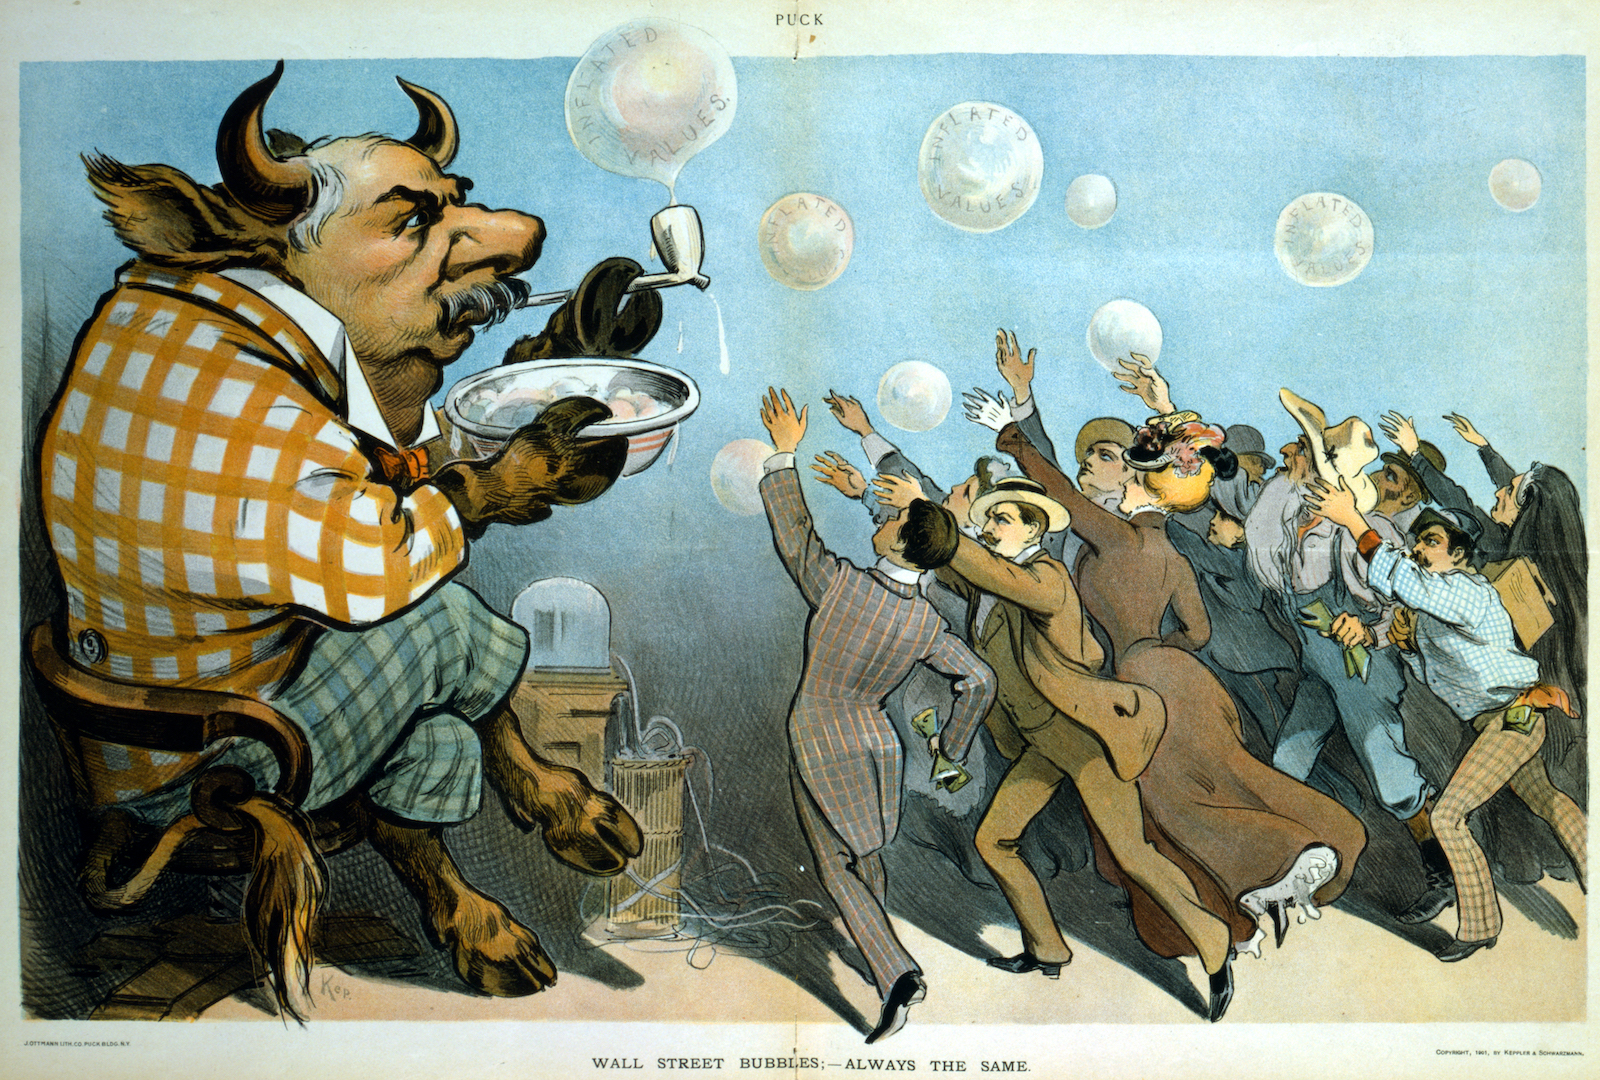 'Wall Street Bubbles – always the same,' 1901 cartoon by Keppler, depicts J.P. Morgan as a bull blowing soap bubbles for eager investors. Source: Wikimedia Commons